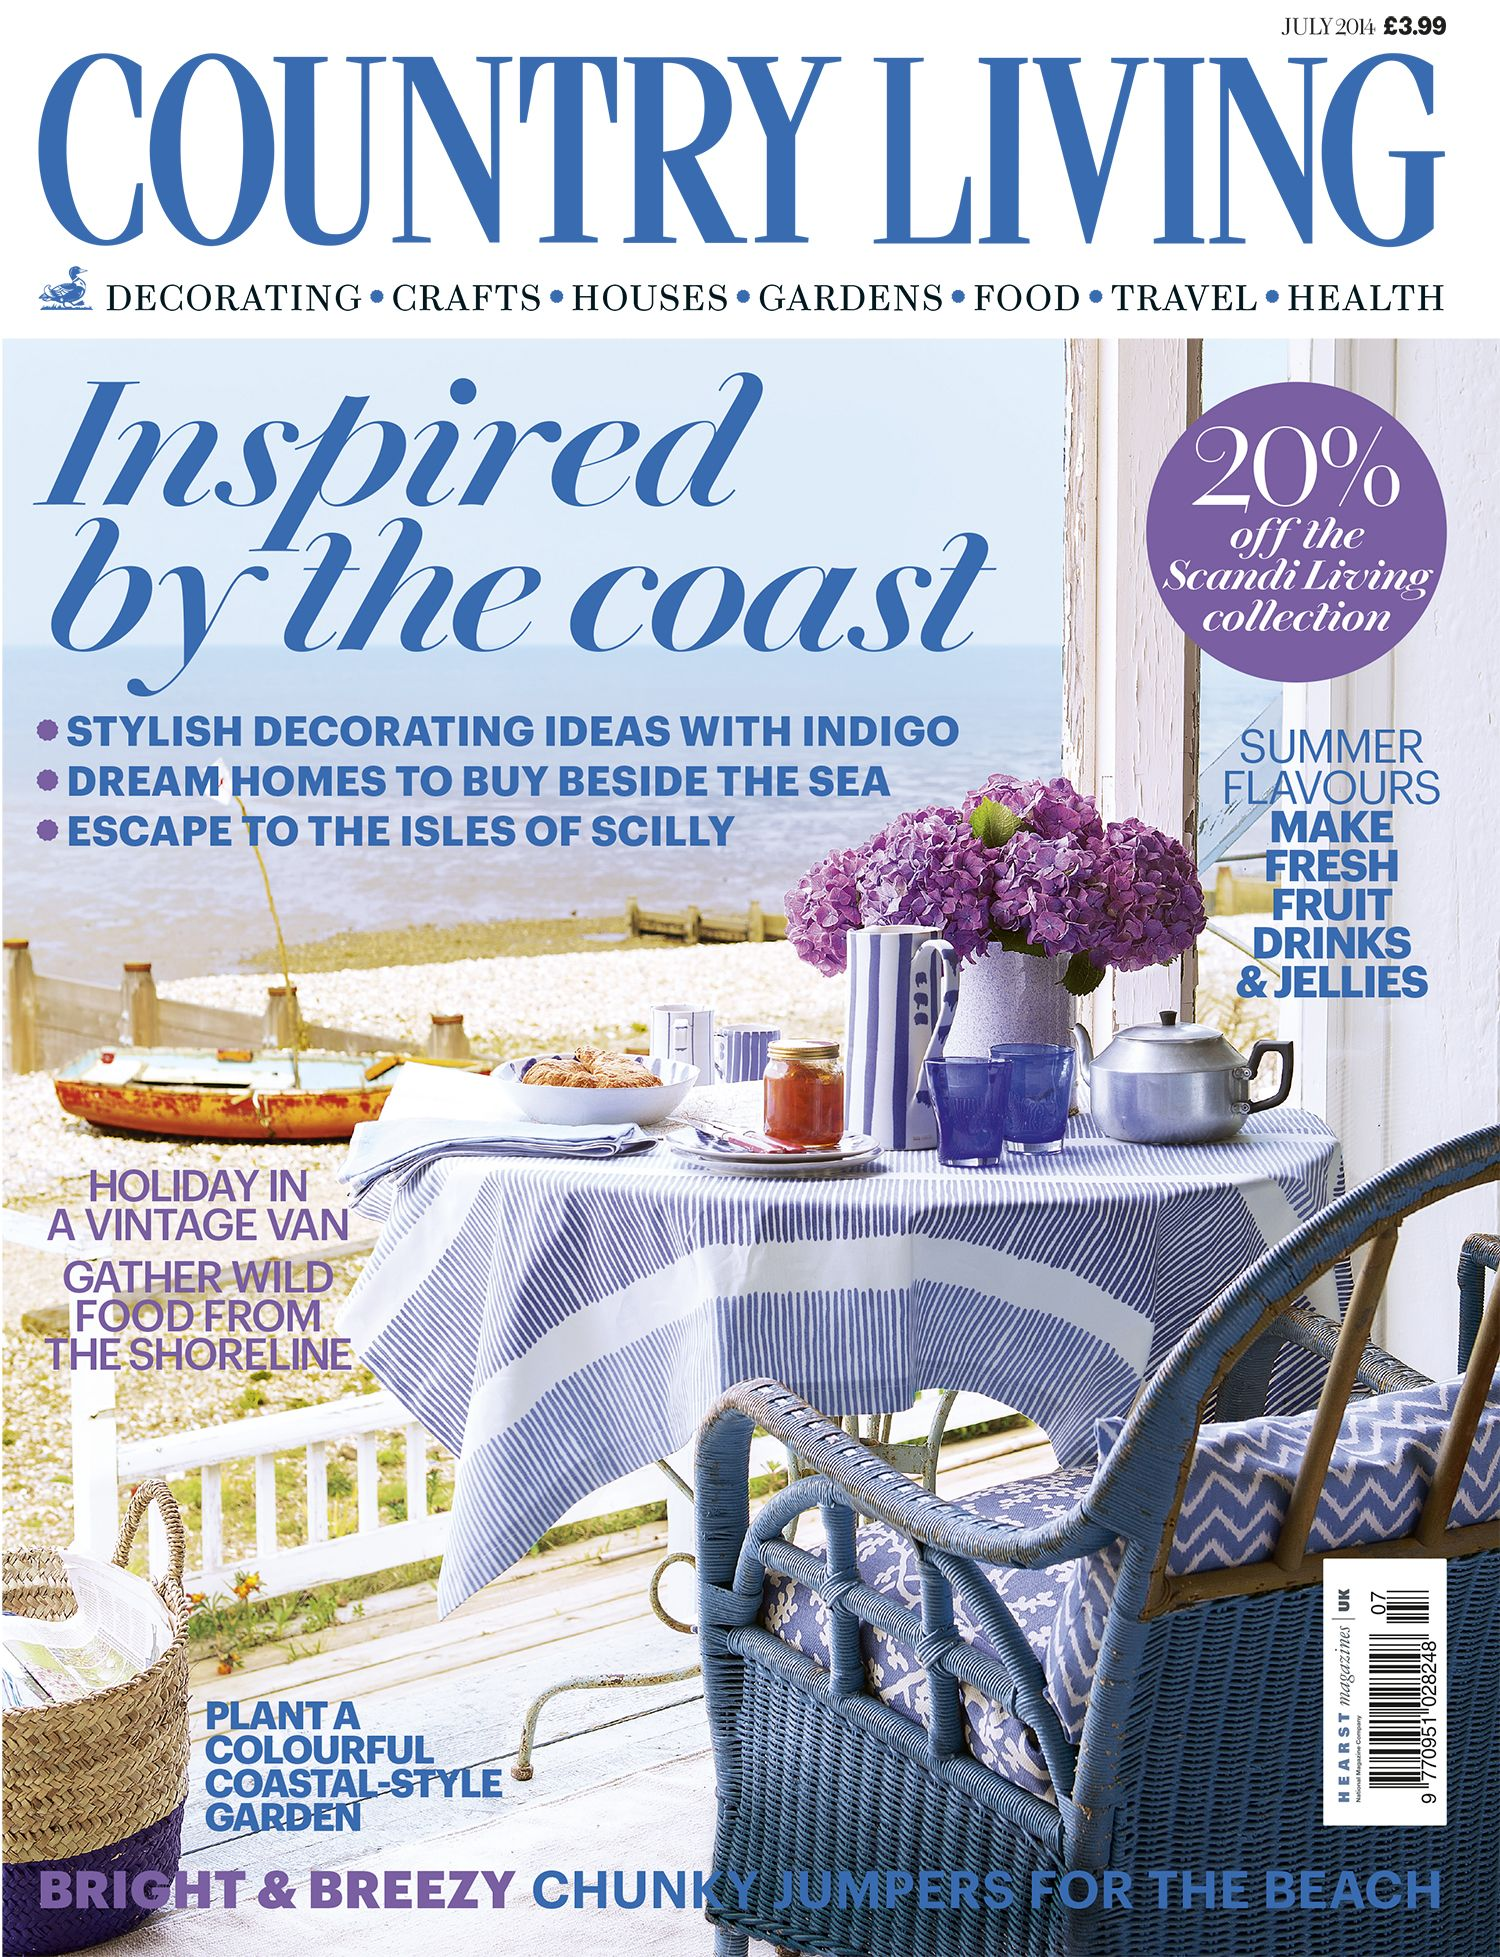 Country Living magazine July 2014 cover countryliving.co